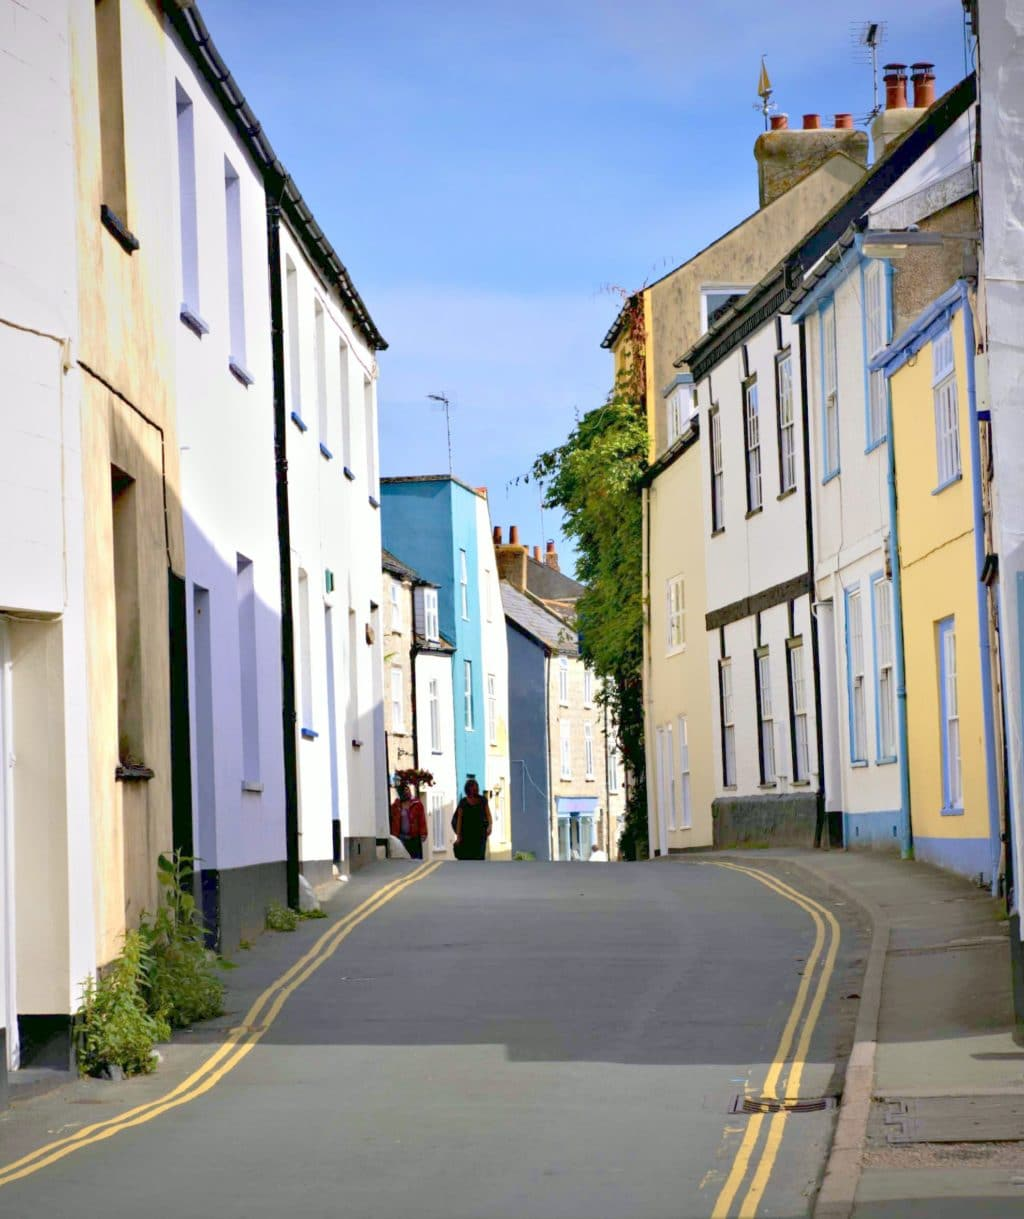 Coombe Street, Lyme Regis showing Lavender Cottage and Teal House